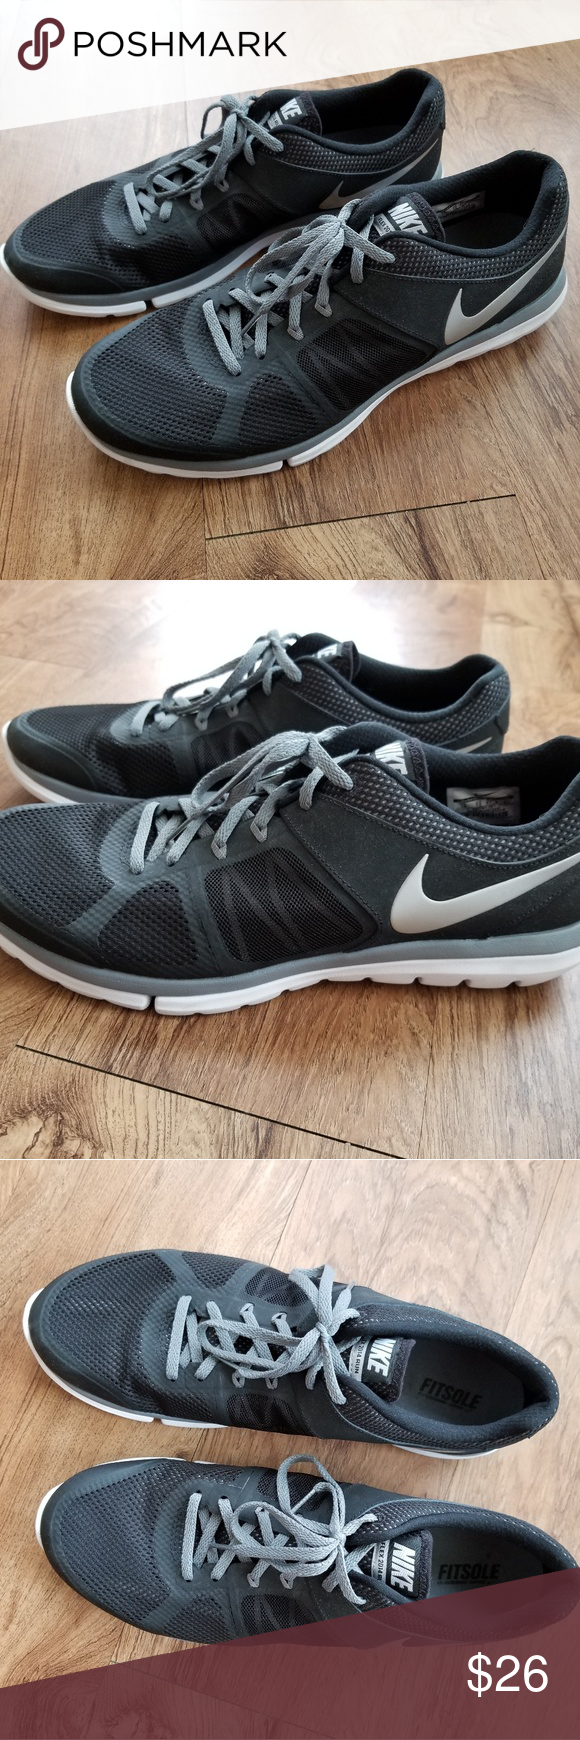 0f1d8b5bd303b MEN S NIKE FLEX 2014 RUN TENNIS SHOES Only worn a couple times. Like new  condition. Men s size 13. Black and silver with mesh design. Very  comfortable!